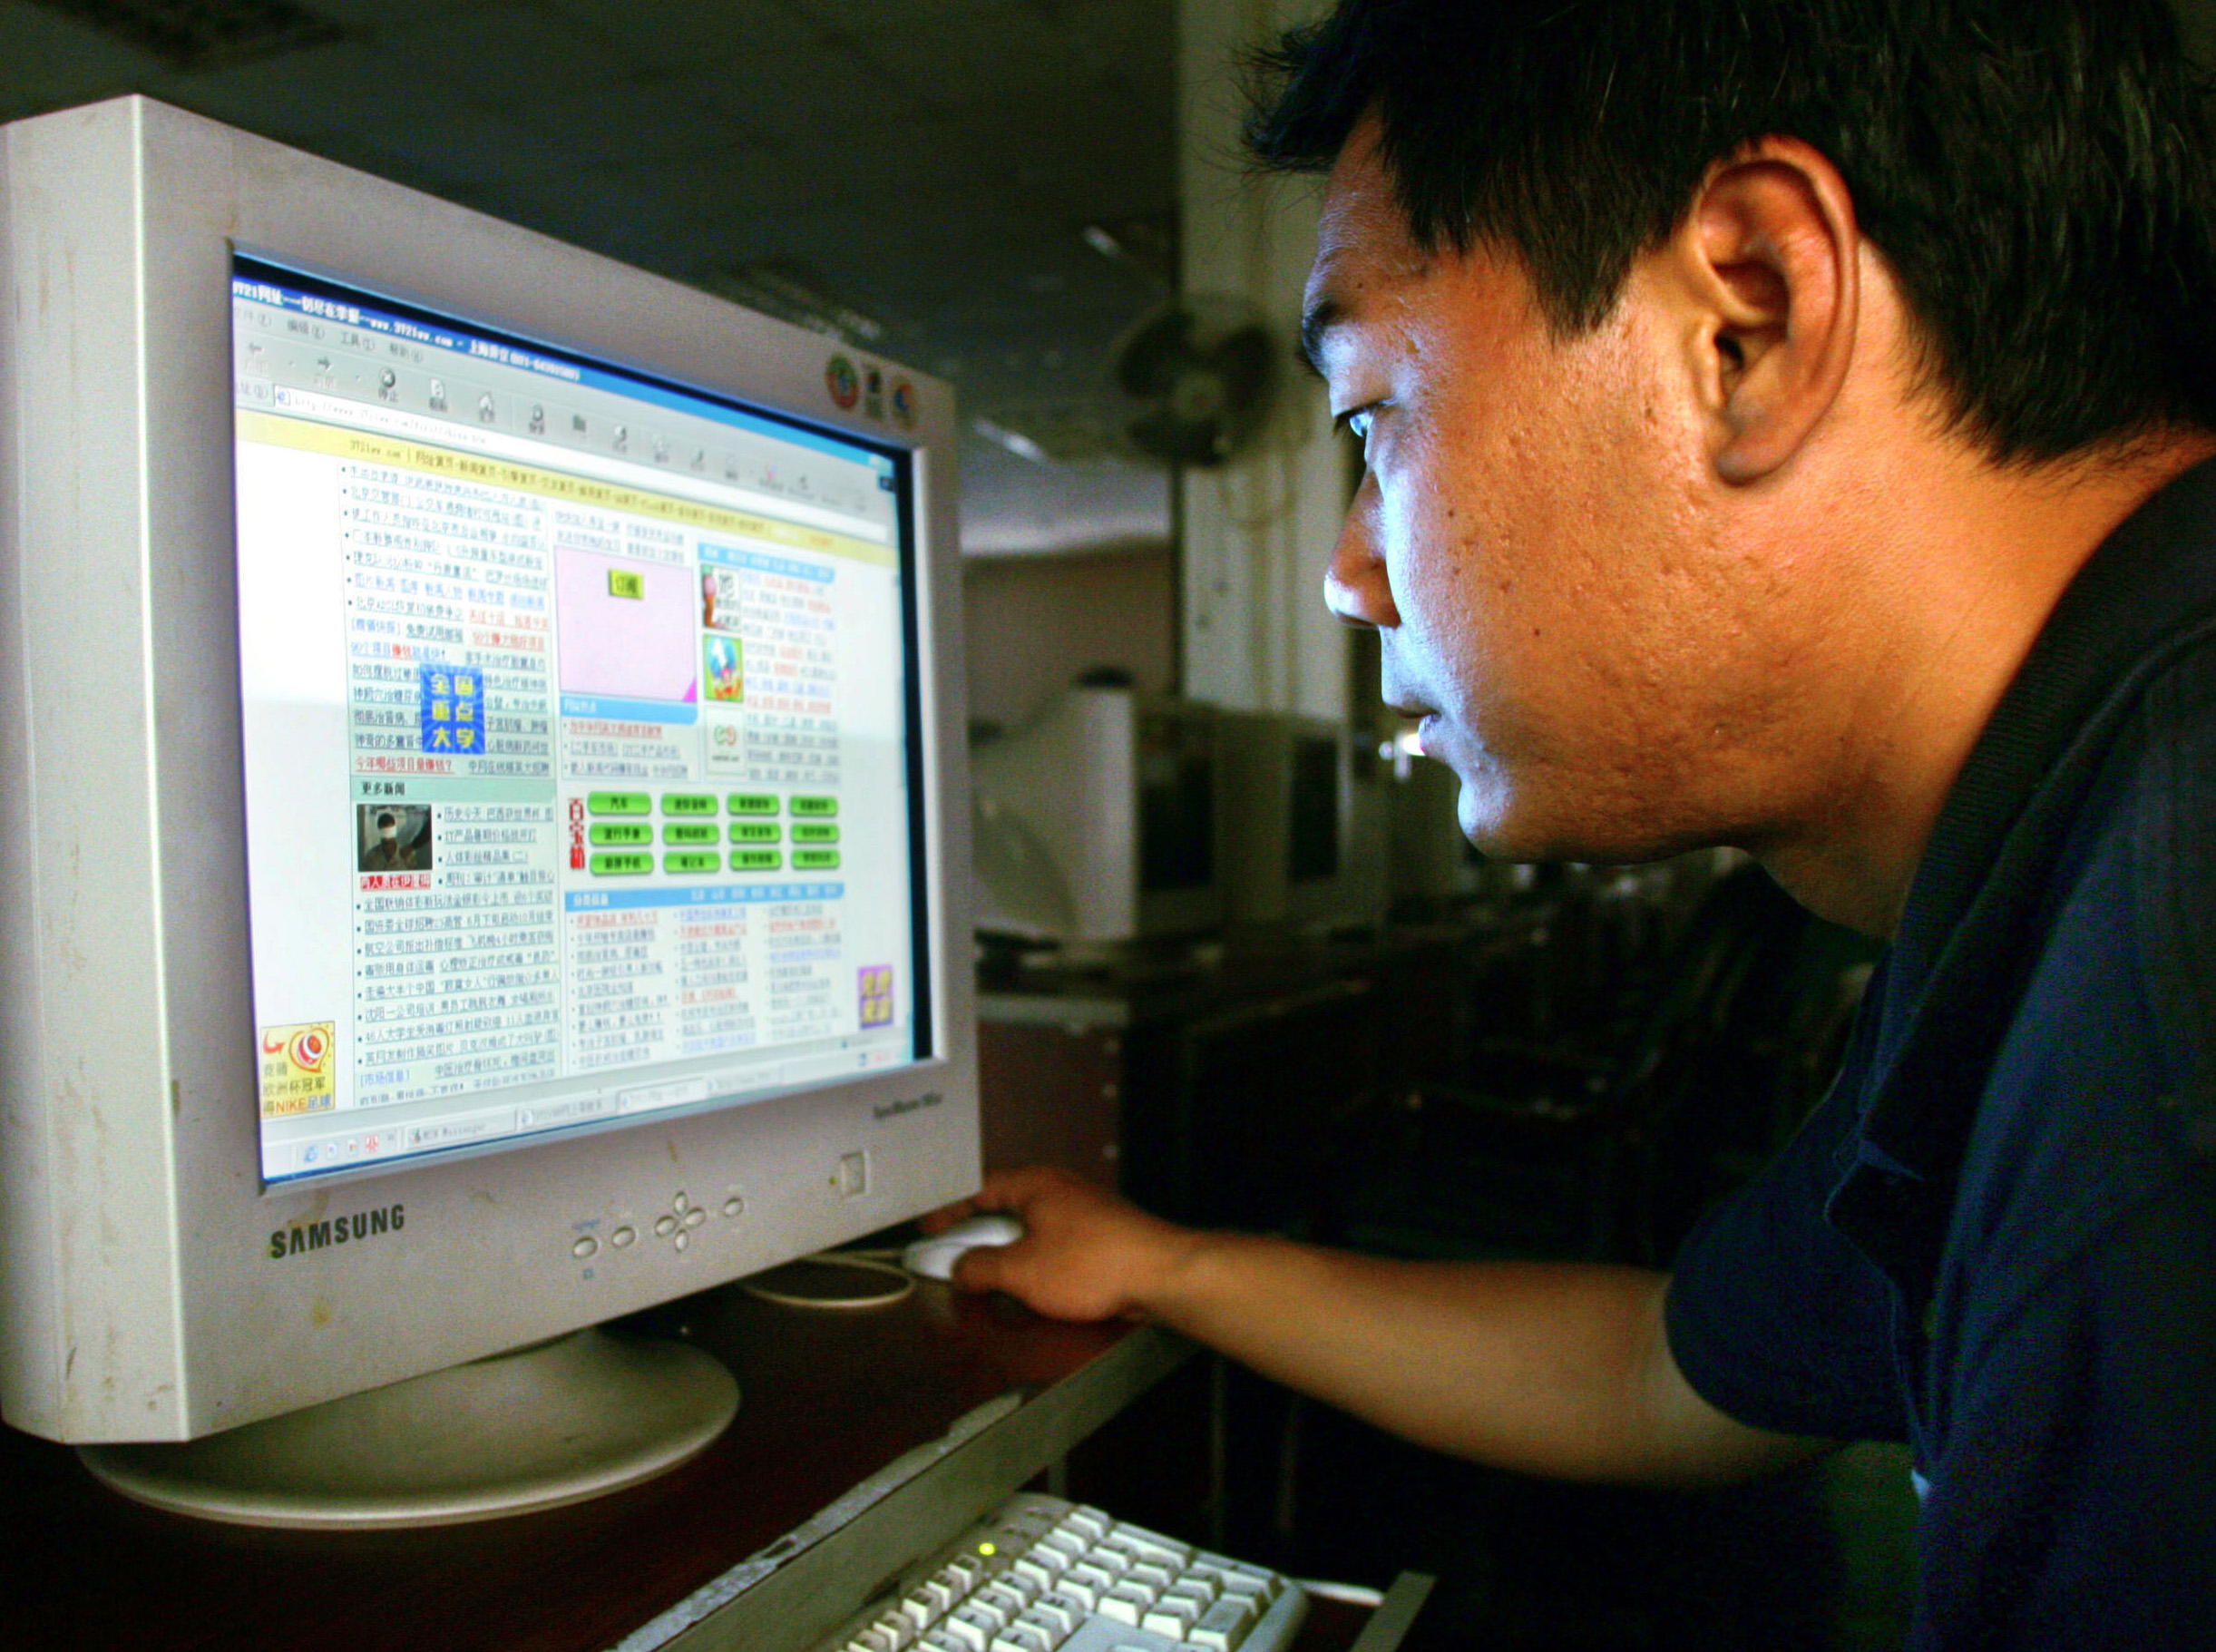 A young man browses a Web site at an Internet cafe in Shanghai, China, in this June 2004 file photo.